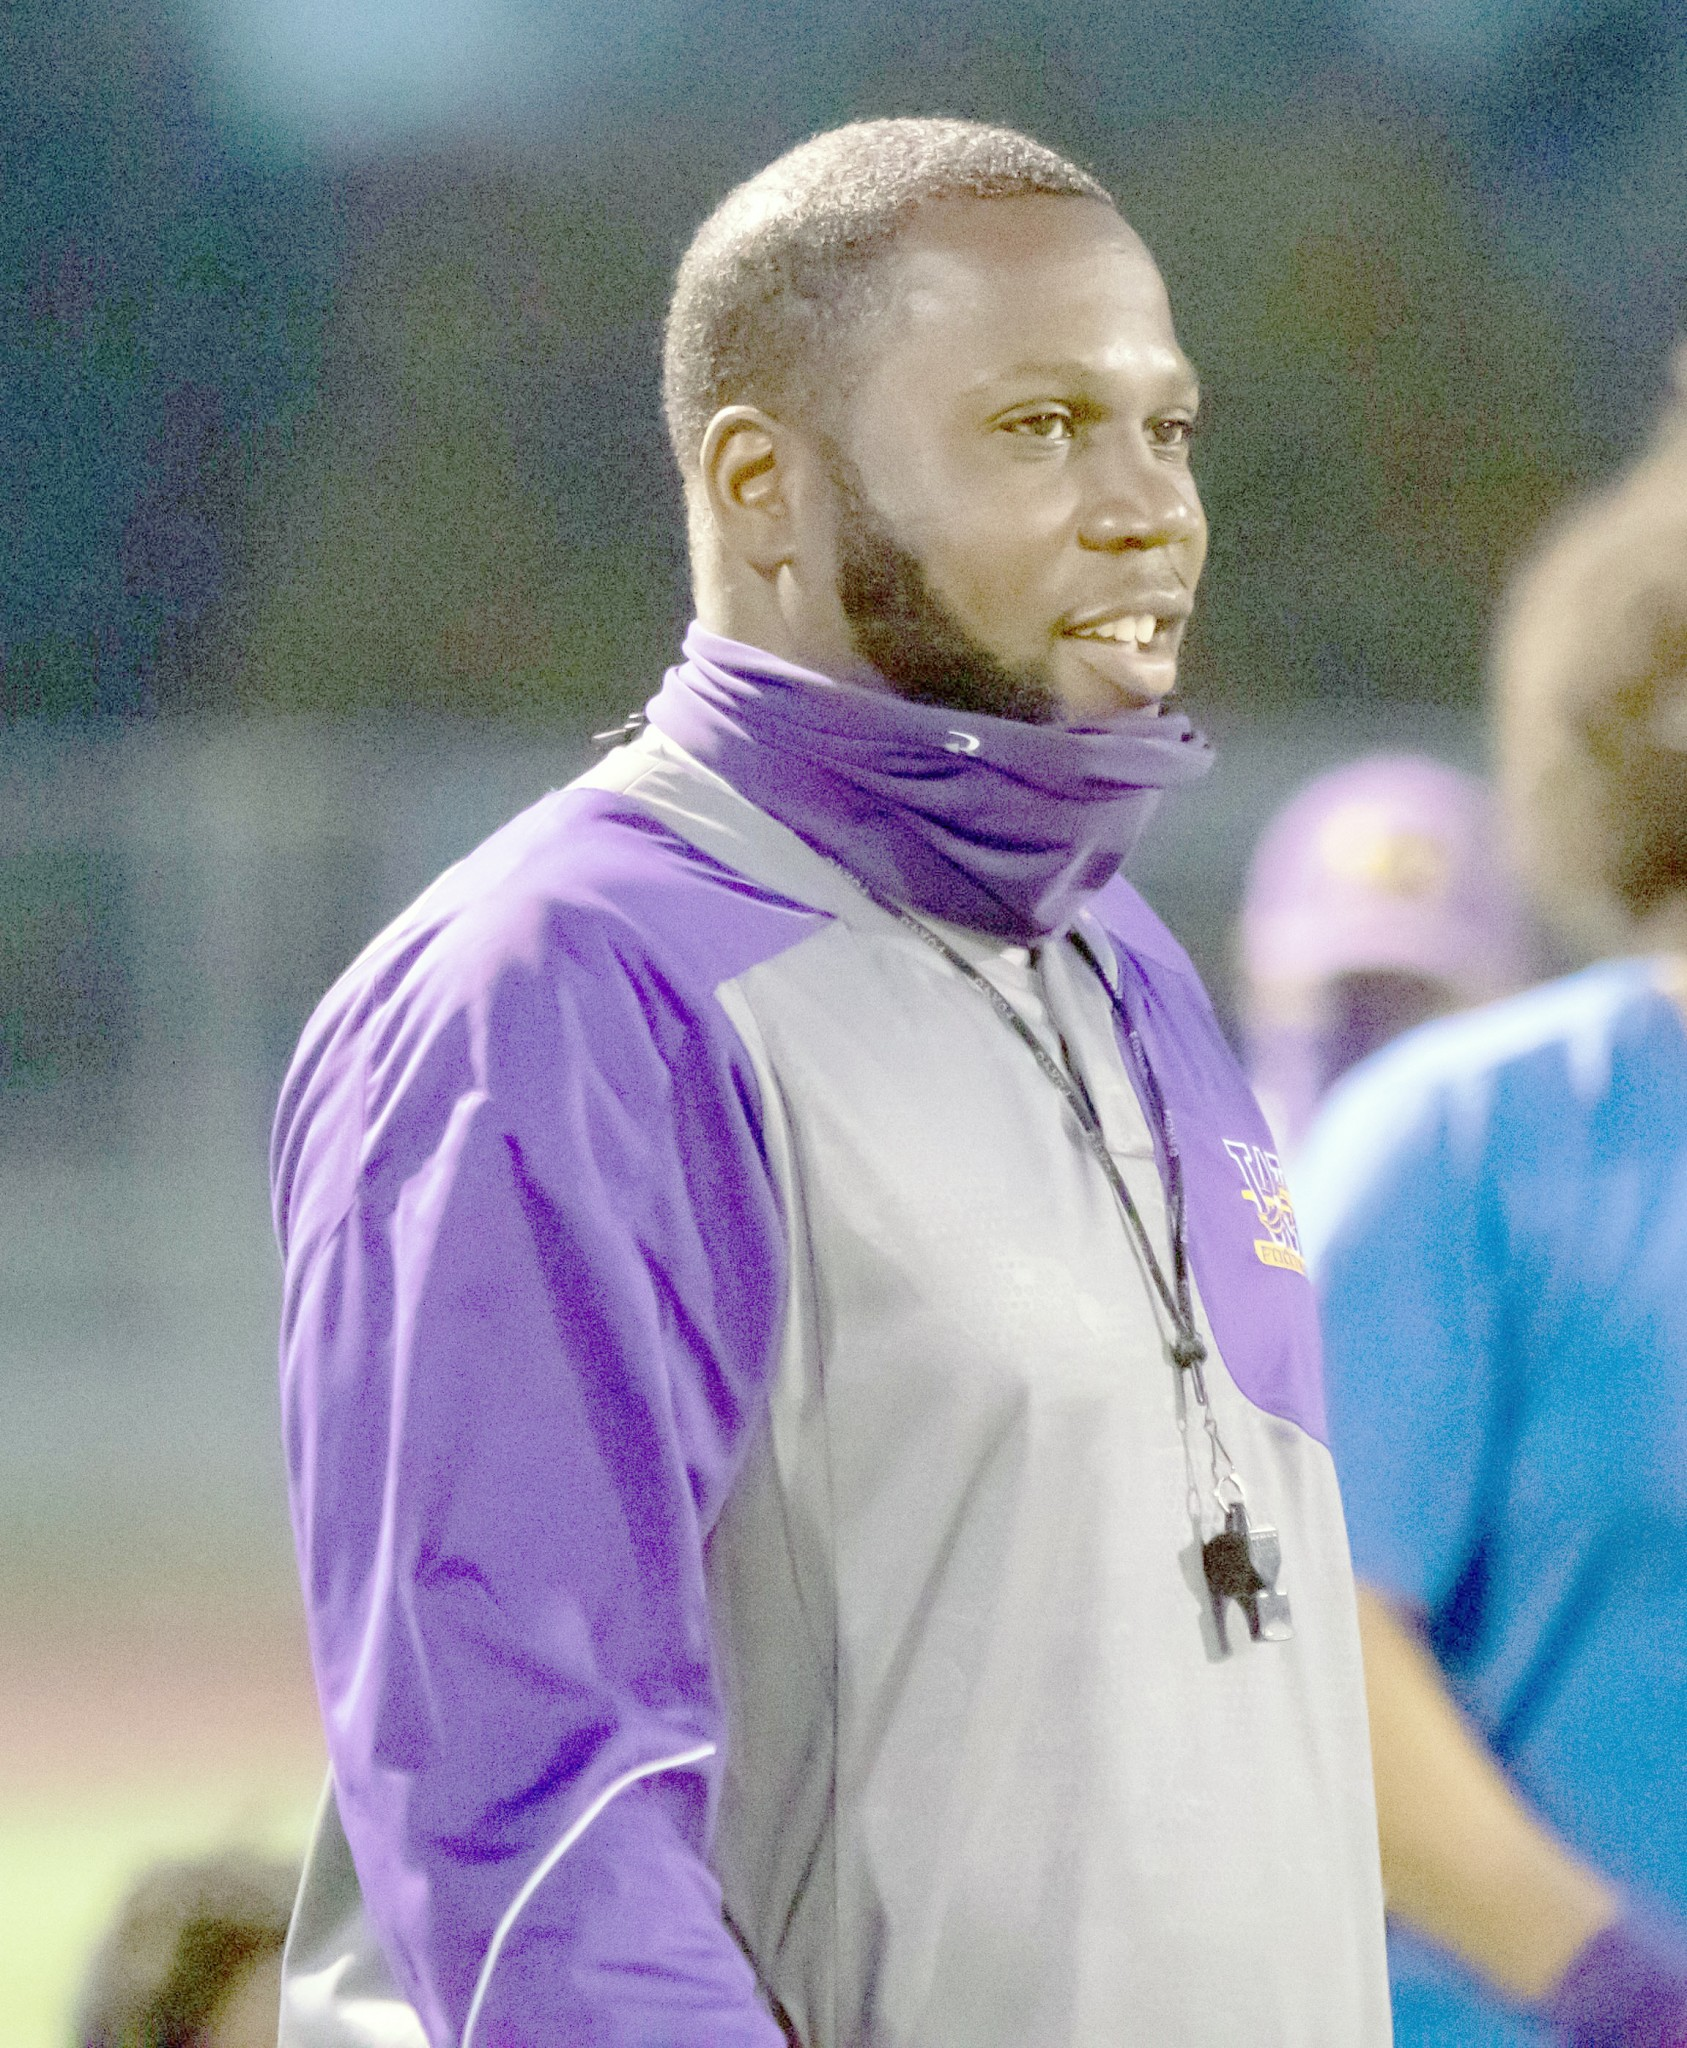 """Waite coach Aaron Peacock surveys the playing field during a City League game at Mollenkopf Stadium. (Press photo by Harold Hamilton/<a href=""""http://www.HEHphotos.smugmug.com"""">www.HEHphotos.smugmug.com</a>)"""